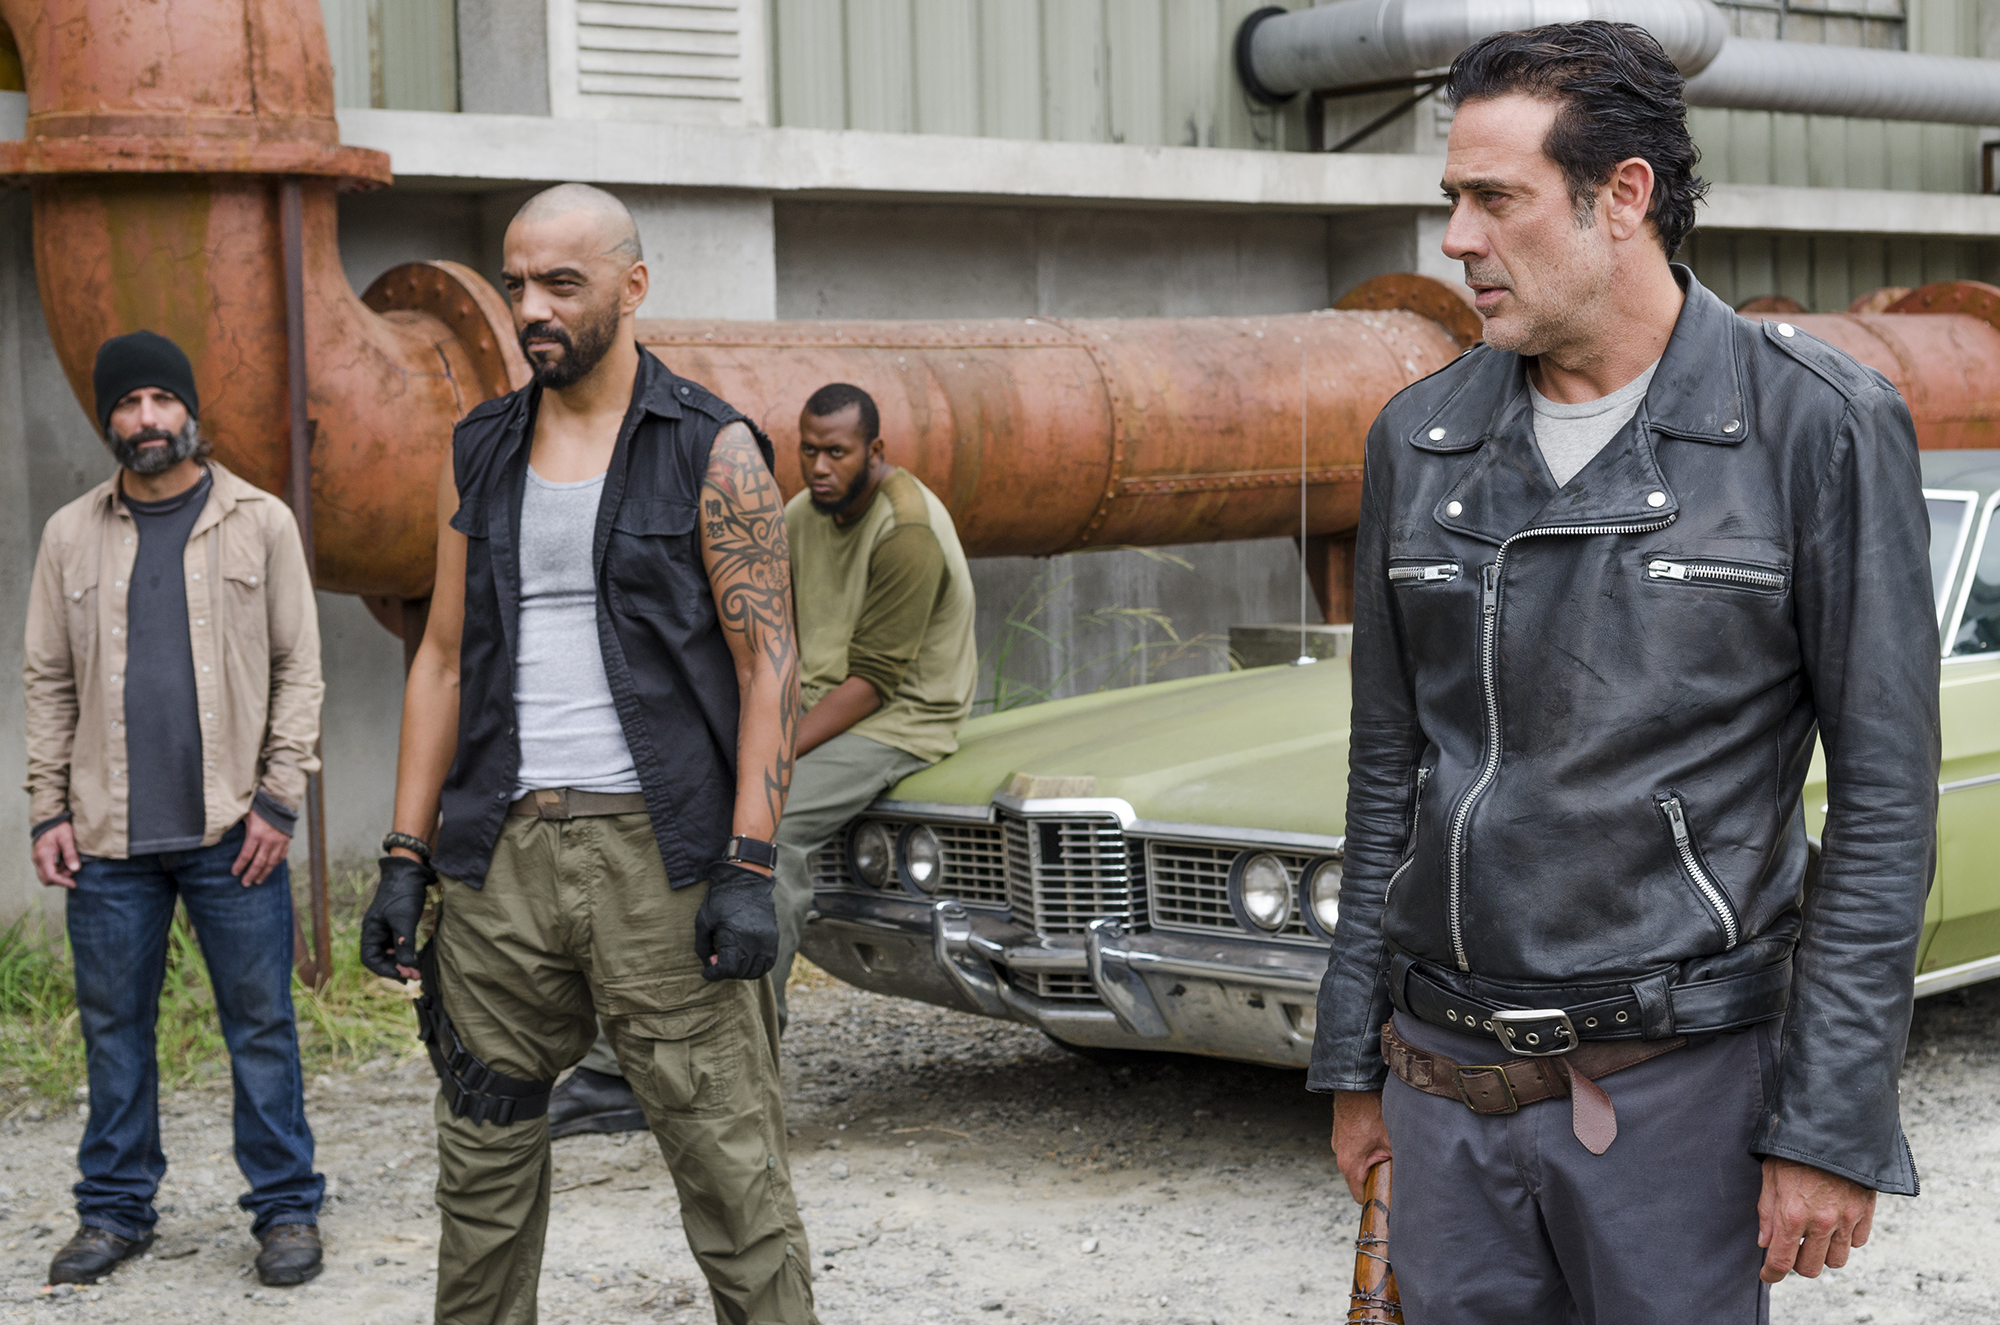 Jeffrey Dean Morgan as Negan, Vince Pusani as Savior - The Walking Dead, Season 7, Episode 11